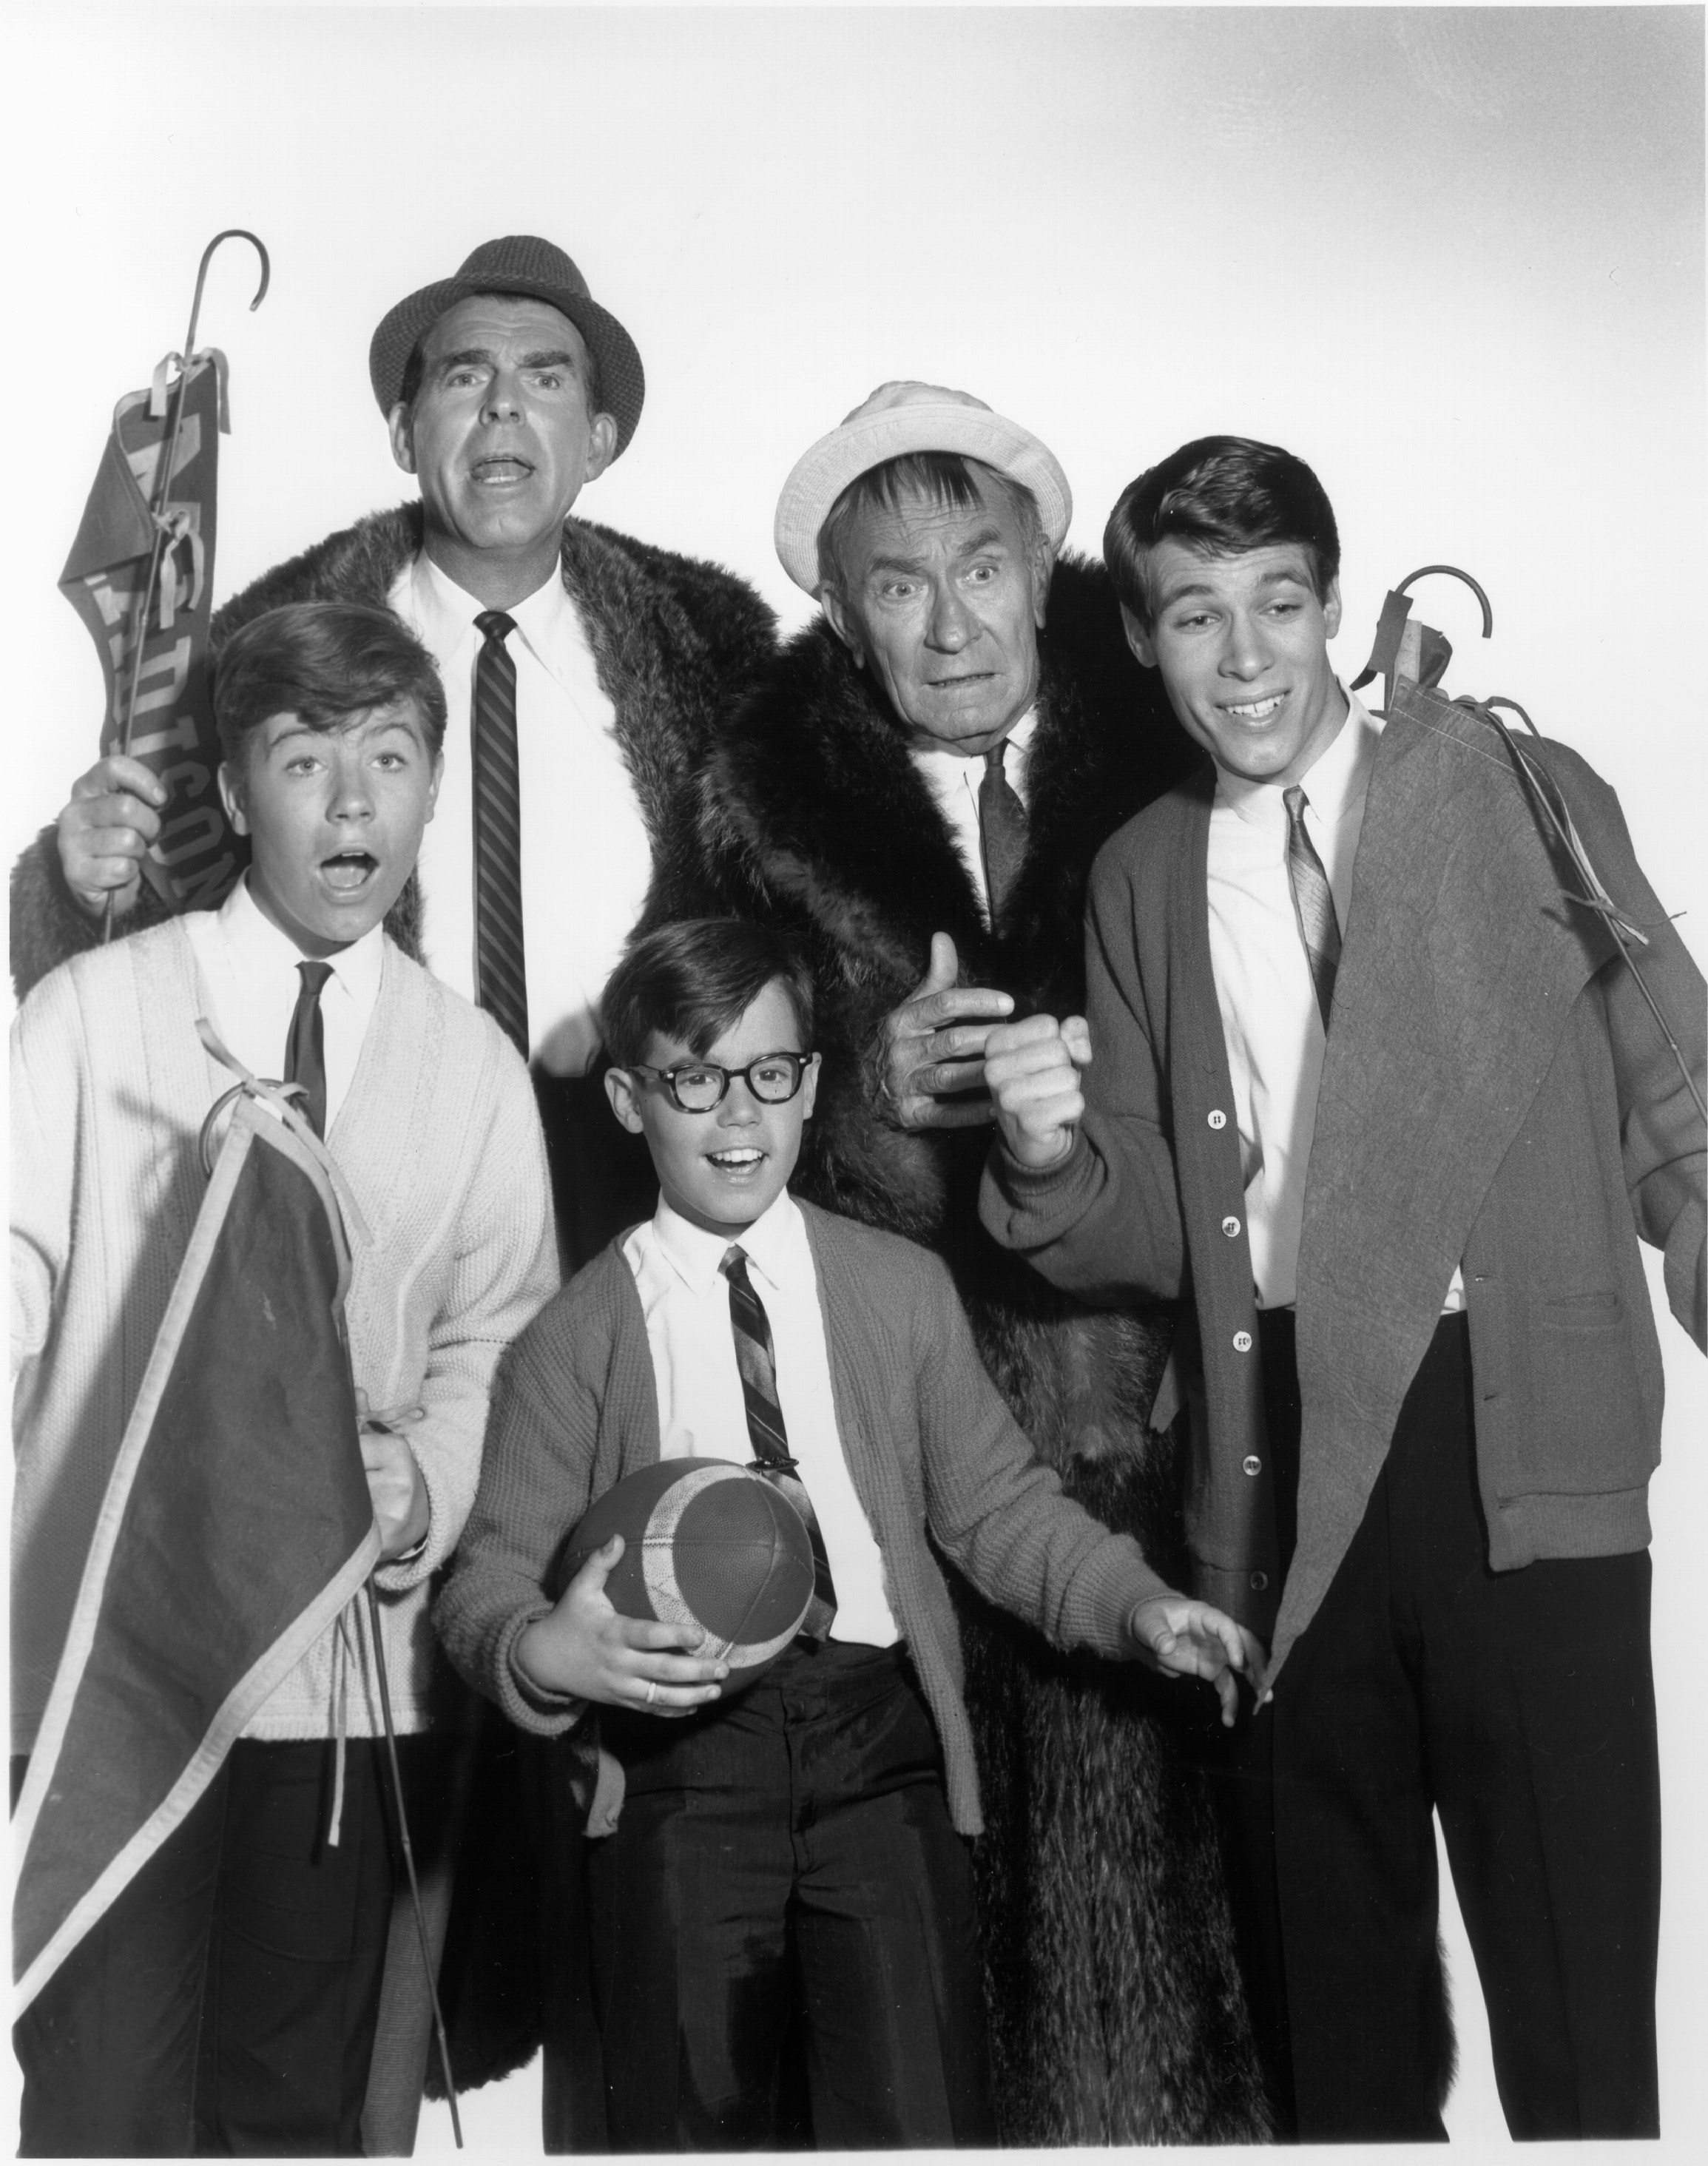 William Demarest, Don Grady, Barry Livingston, Stanley Livingston, and Fred MacMurray in My Three Sons (1960)